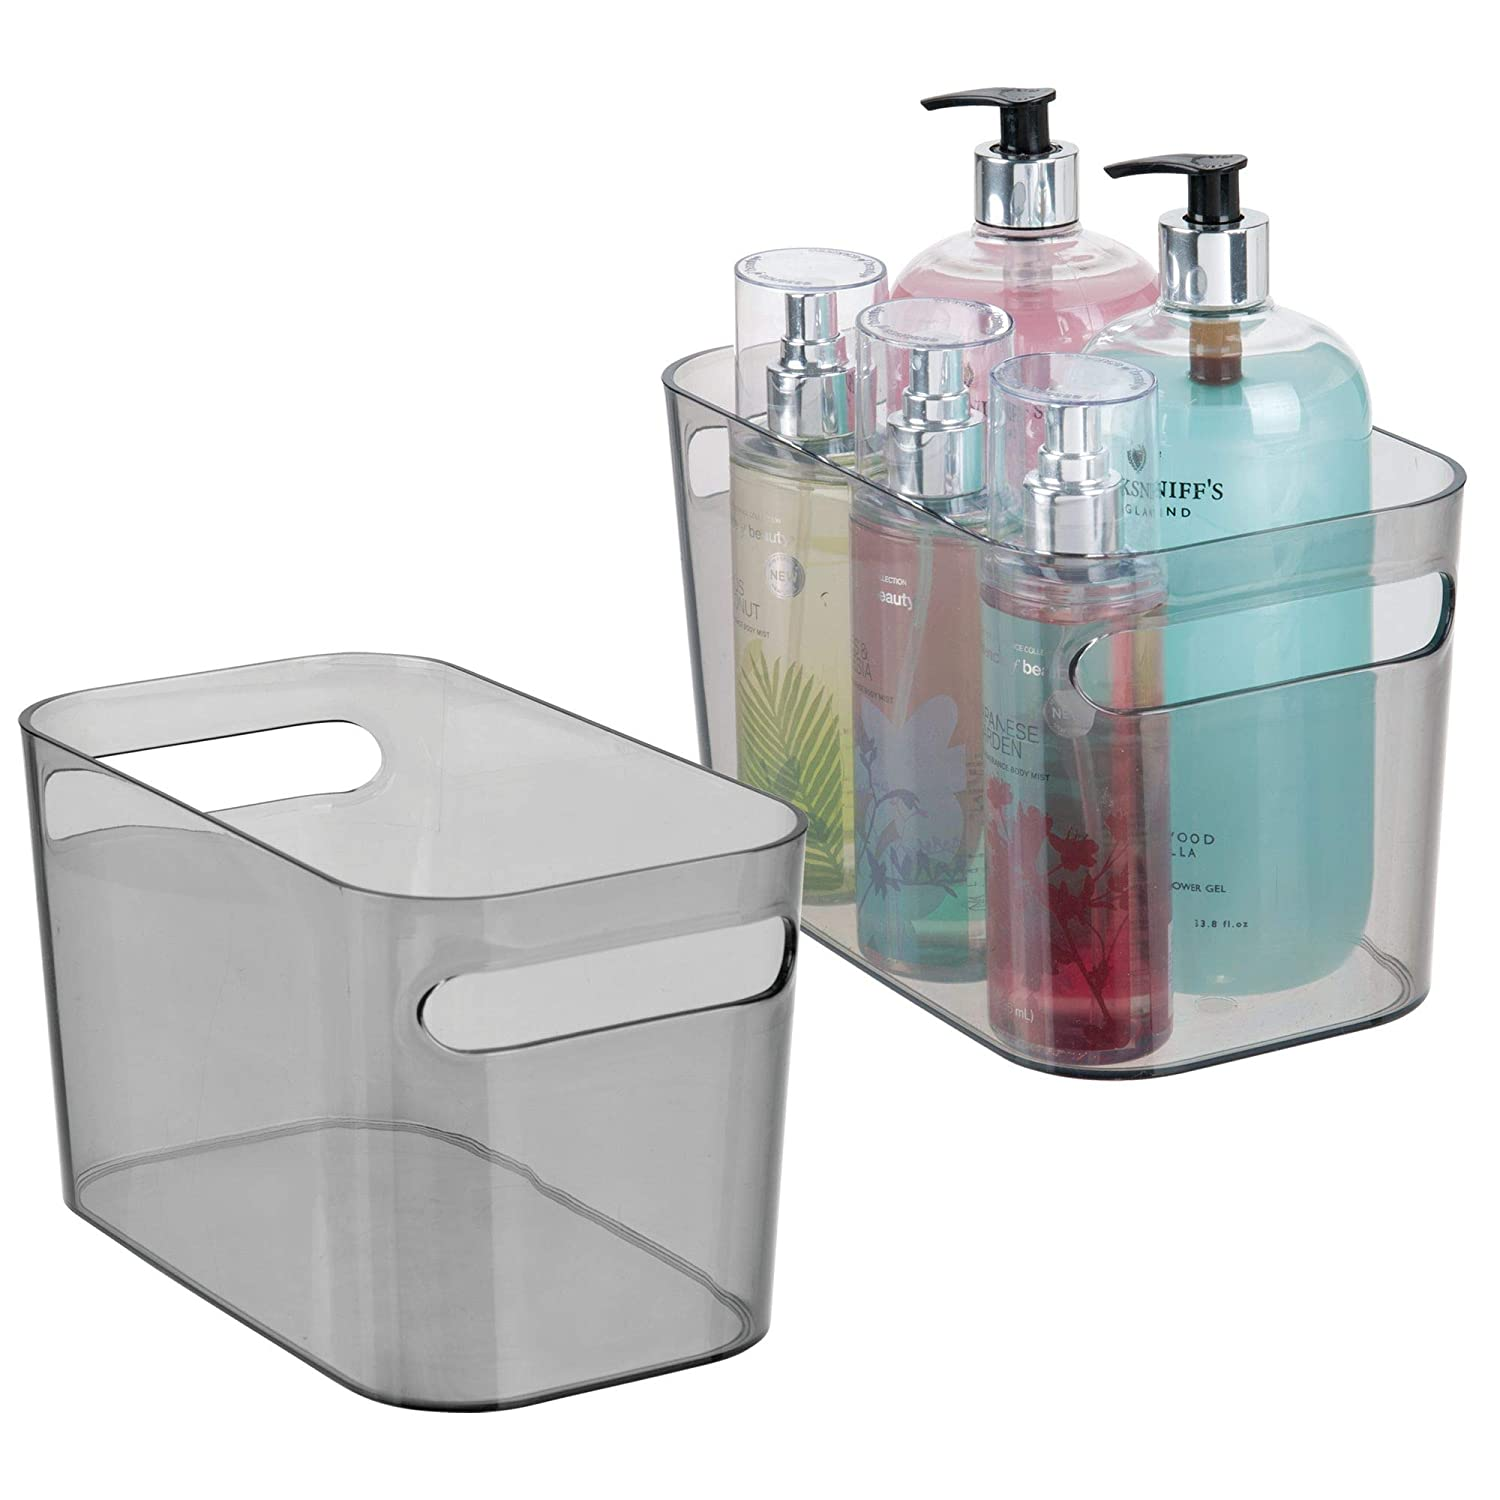 mDesign Bath Storage Bin for Conditioners, Body Wash - Pack of 2, Smoke MetroDecor